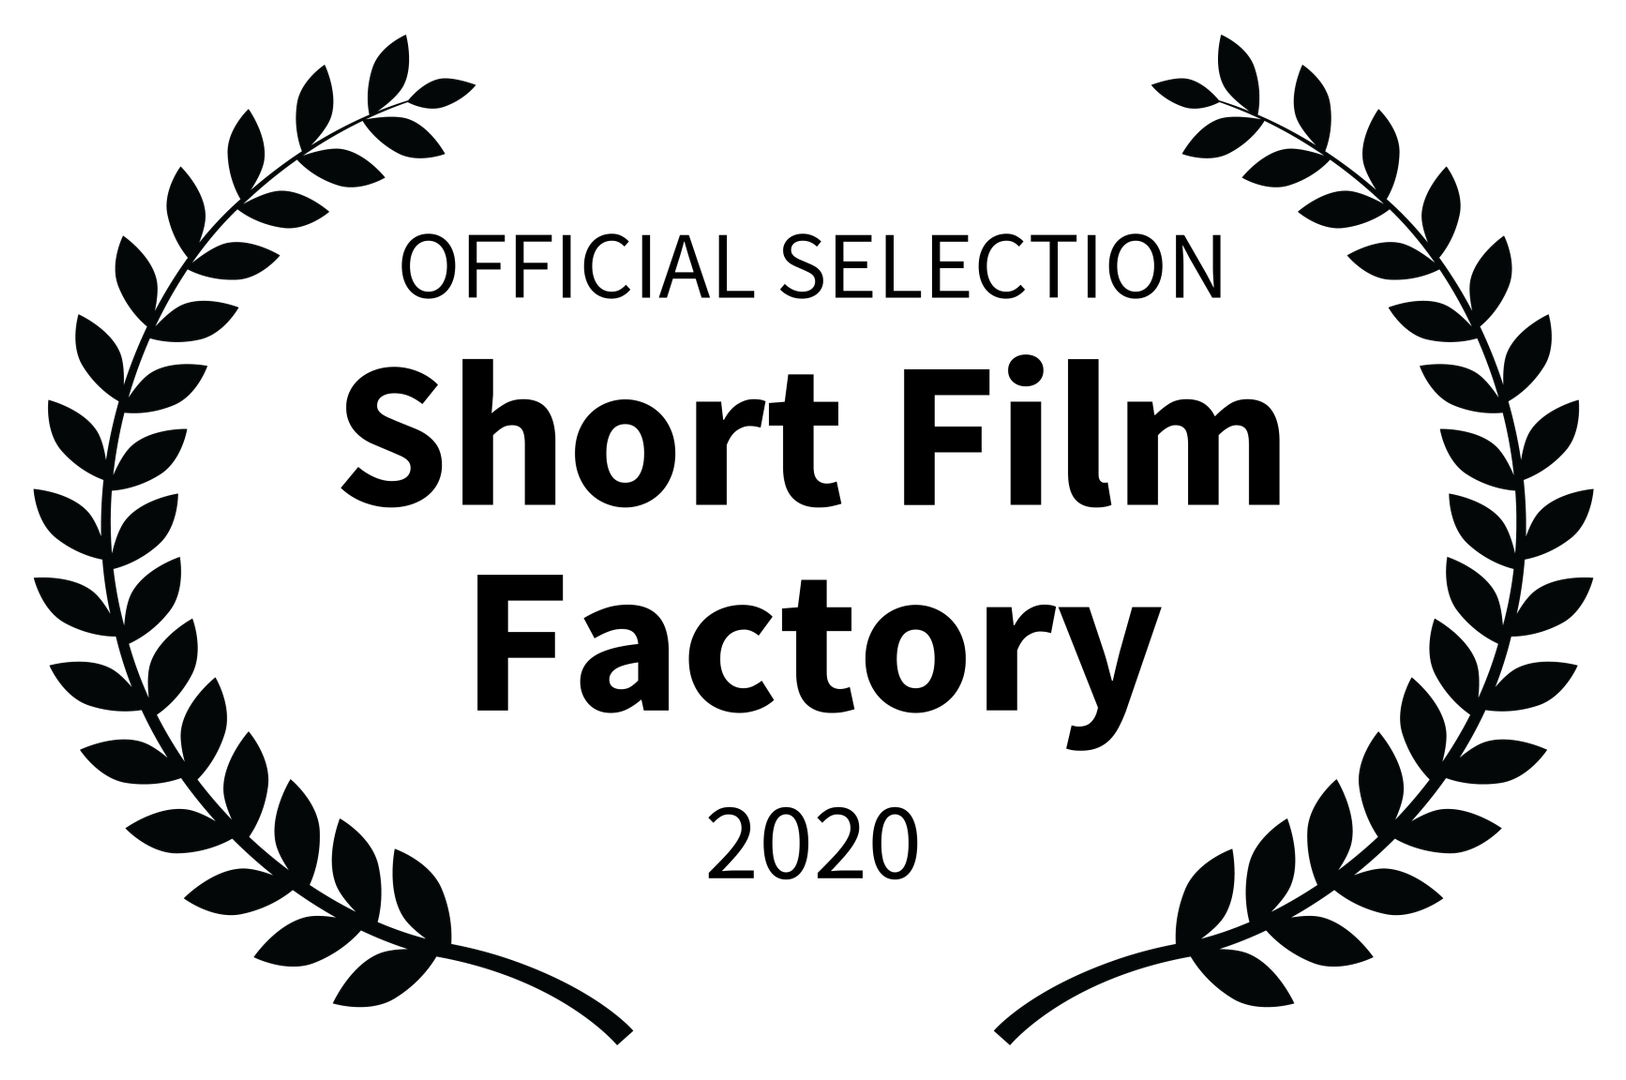 OFFICIAL SELECTION - Short Film Factory